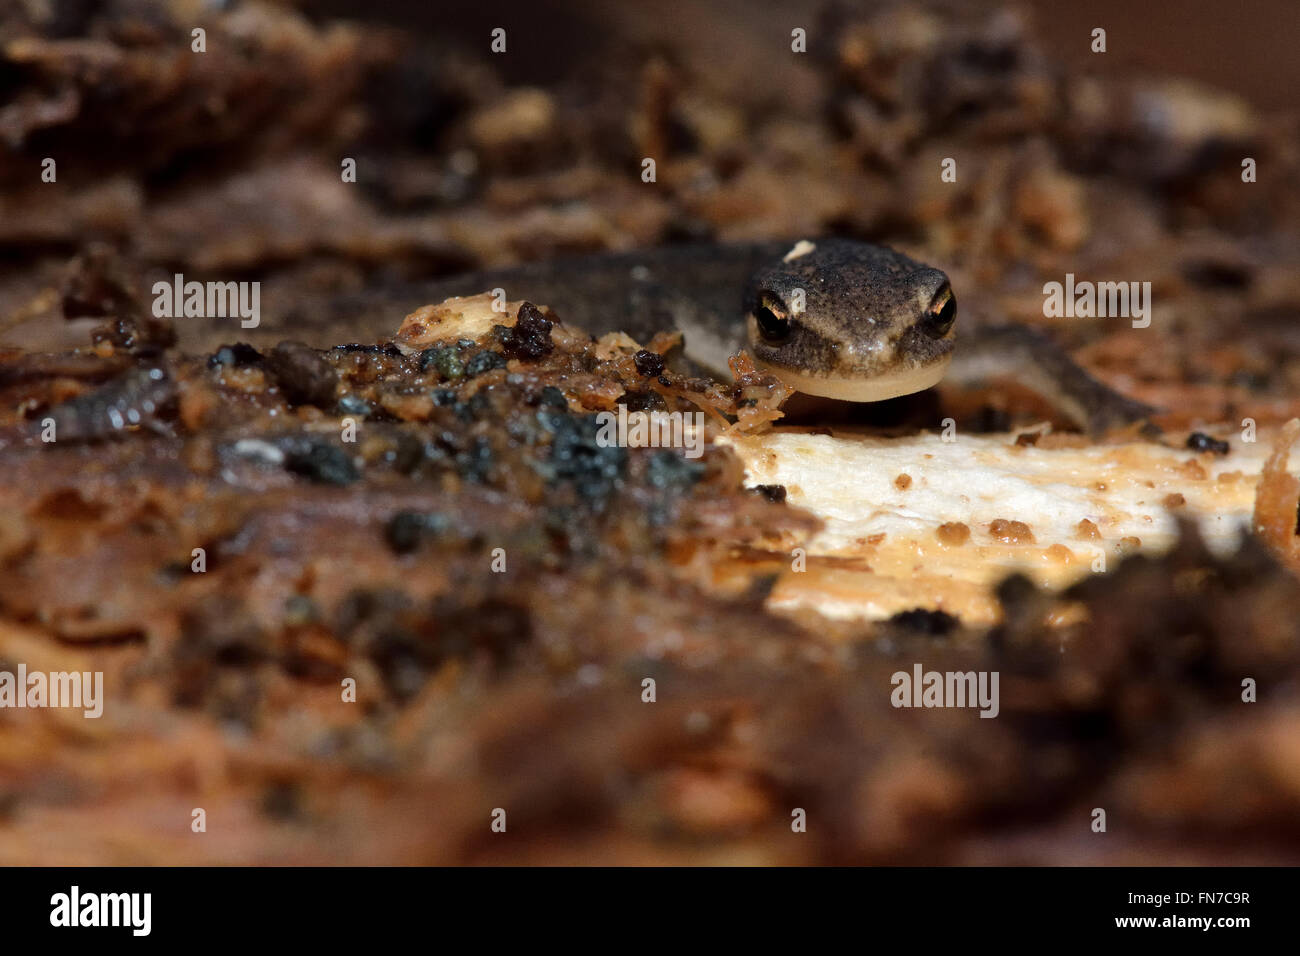 Juvenile newt disturbed in hibernation. Young amphian in the family Salamandridae, exposed from within fallen wood - Stock Image